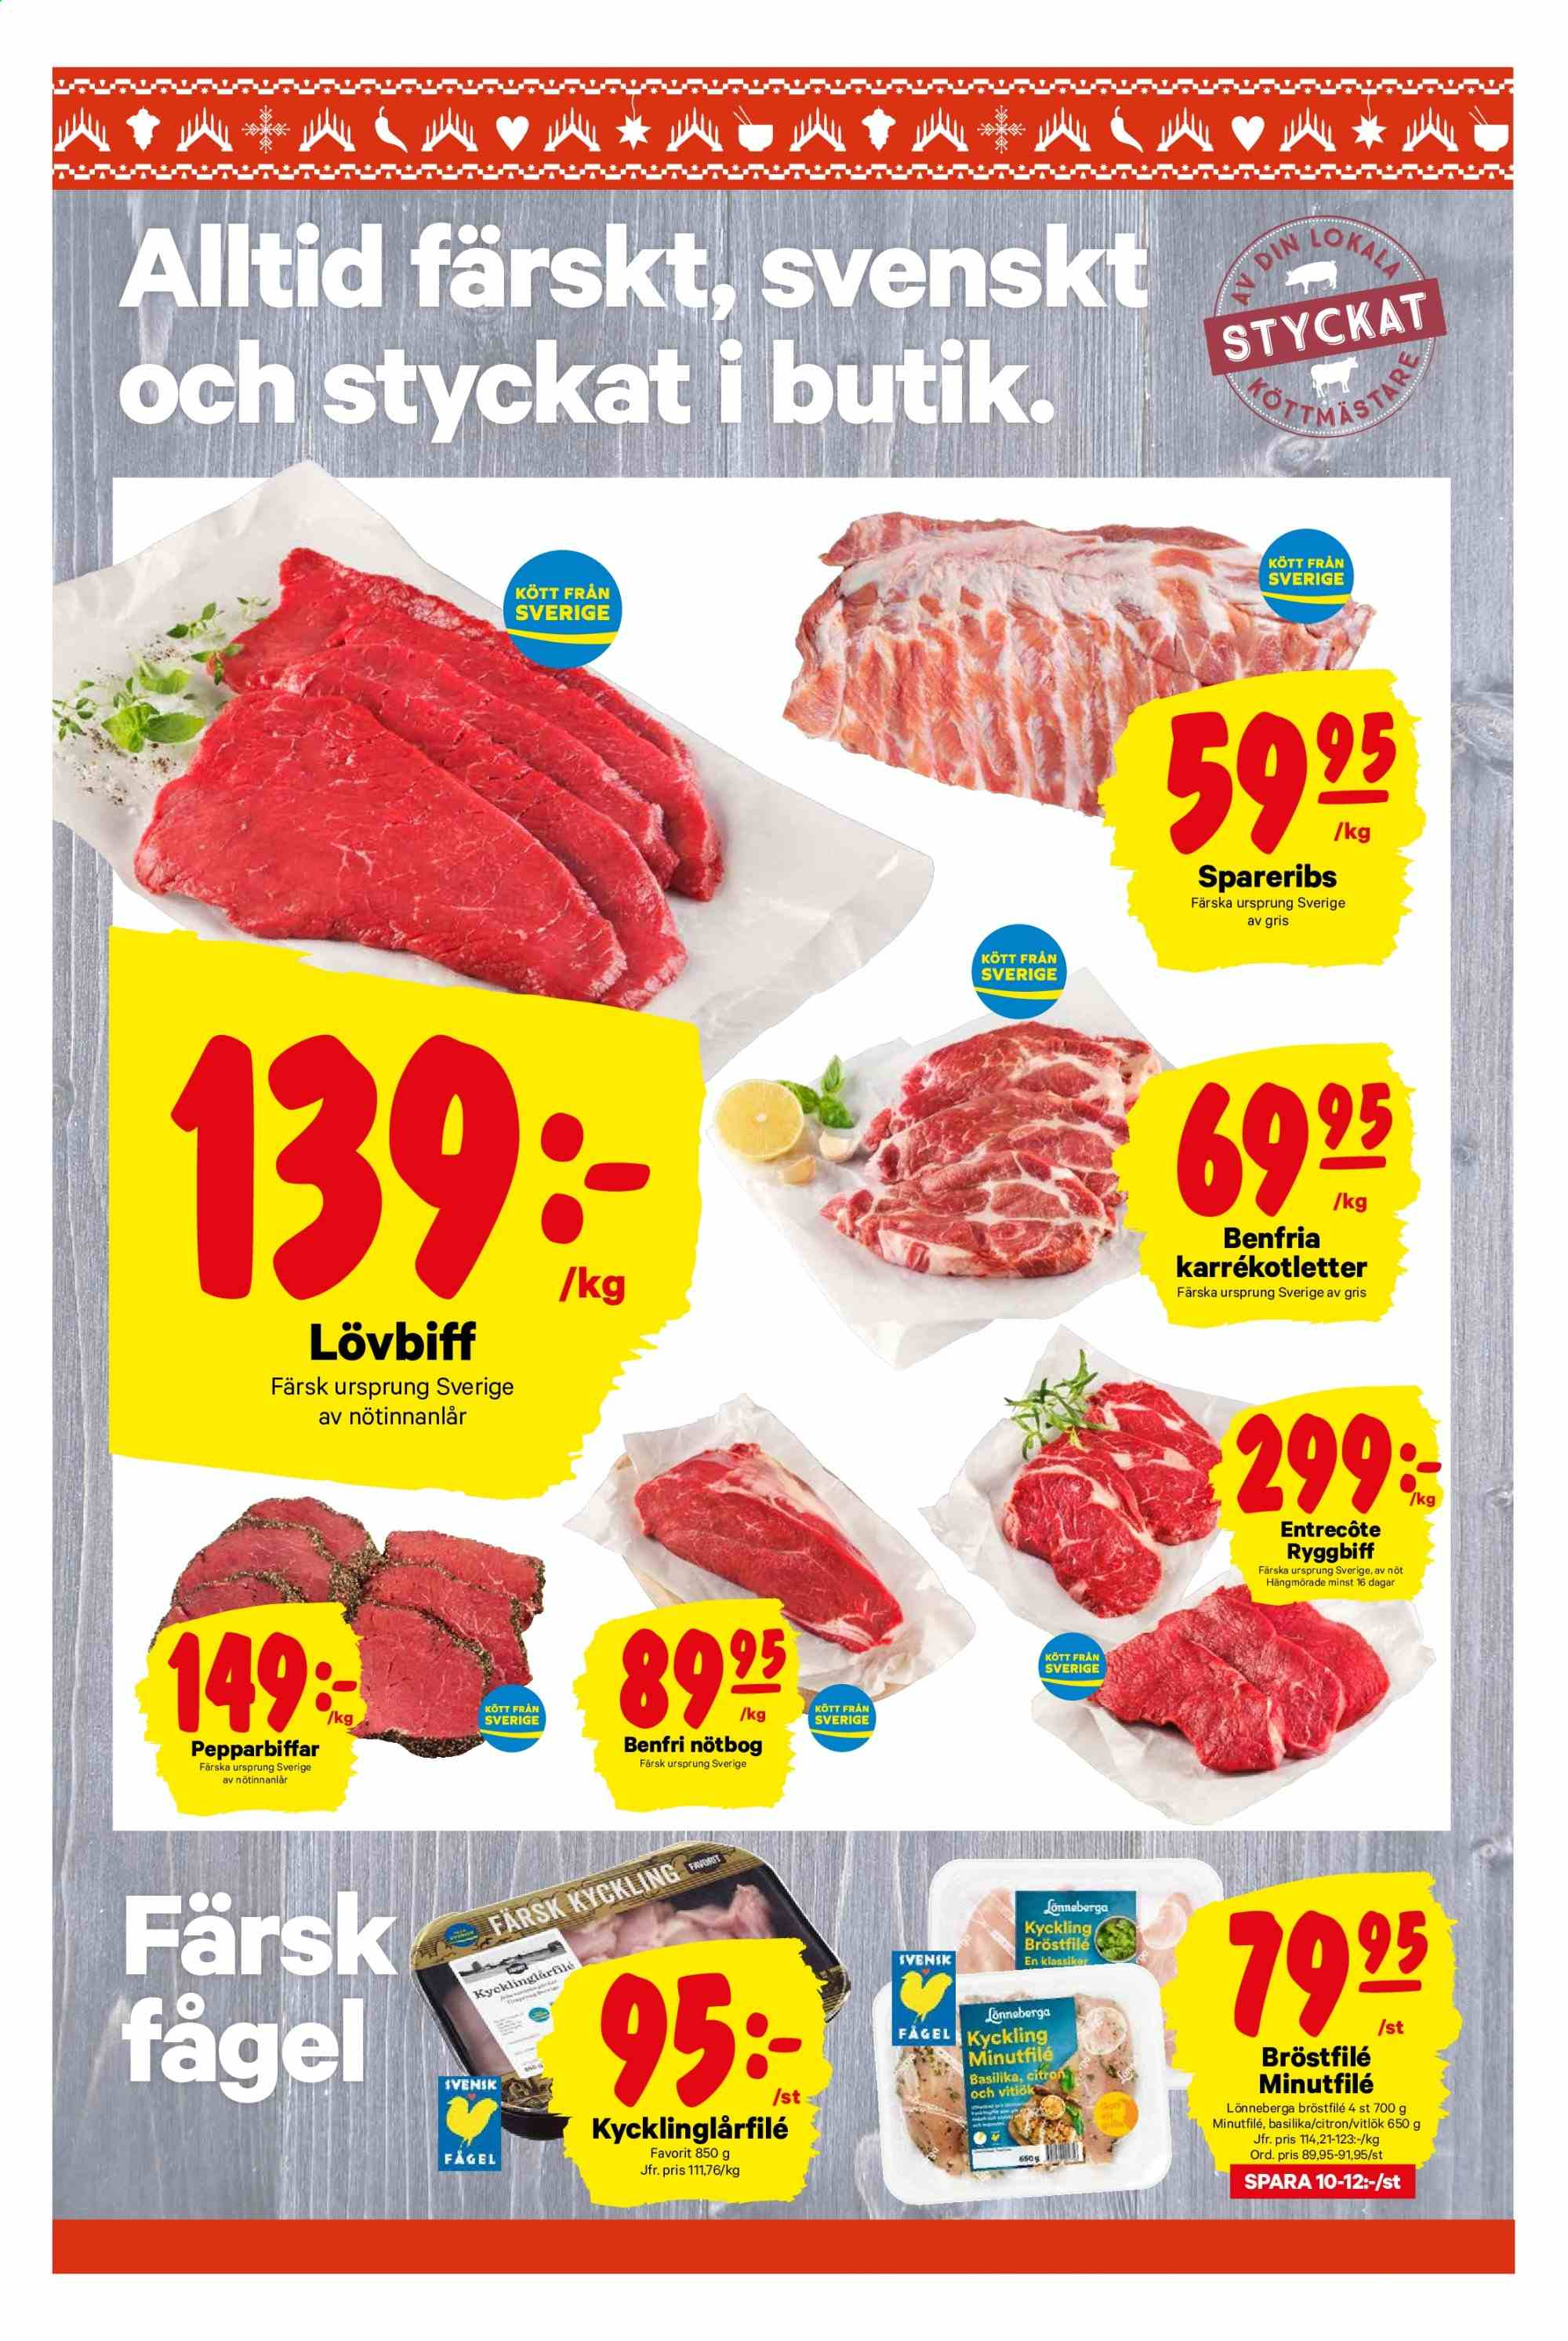 City Gross reklamblad - 25/11 2019 - 1/12 2019. Sida 2.